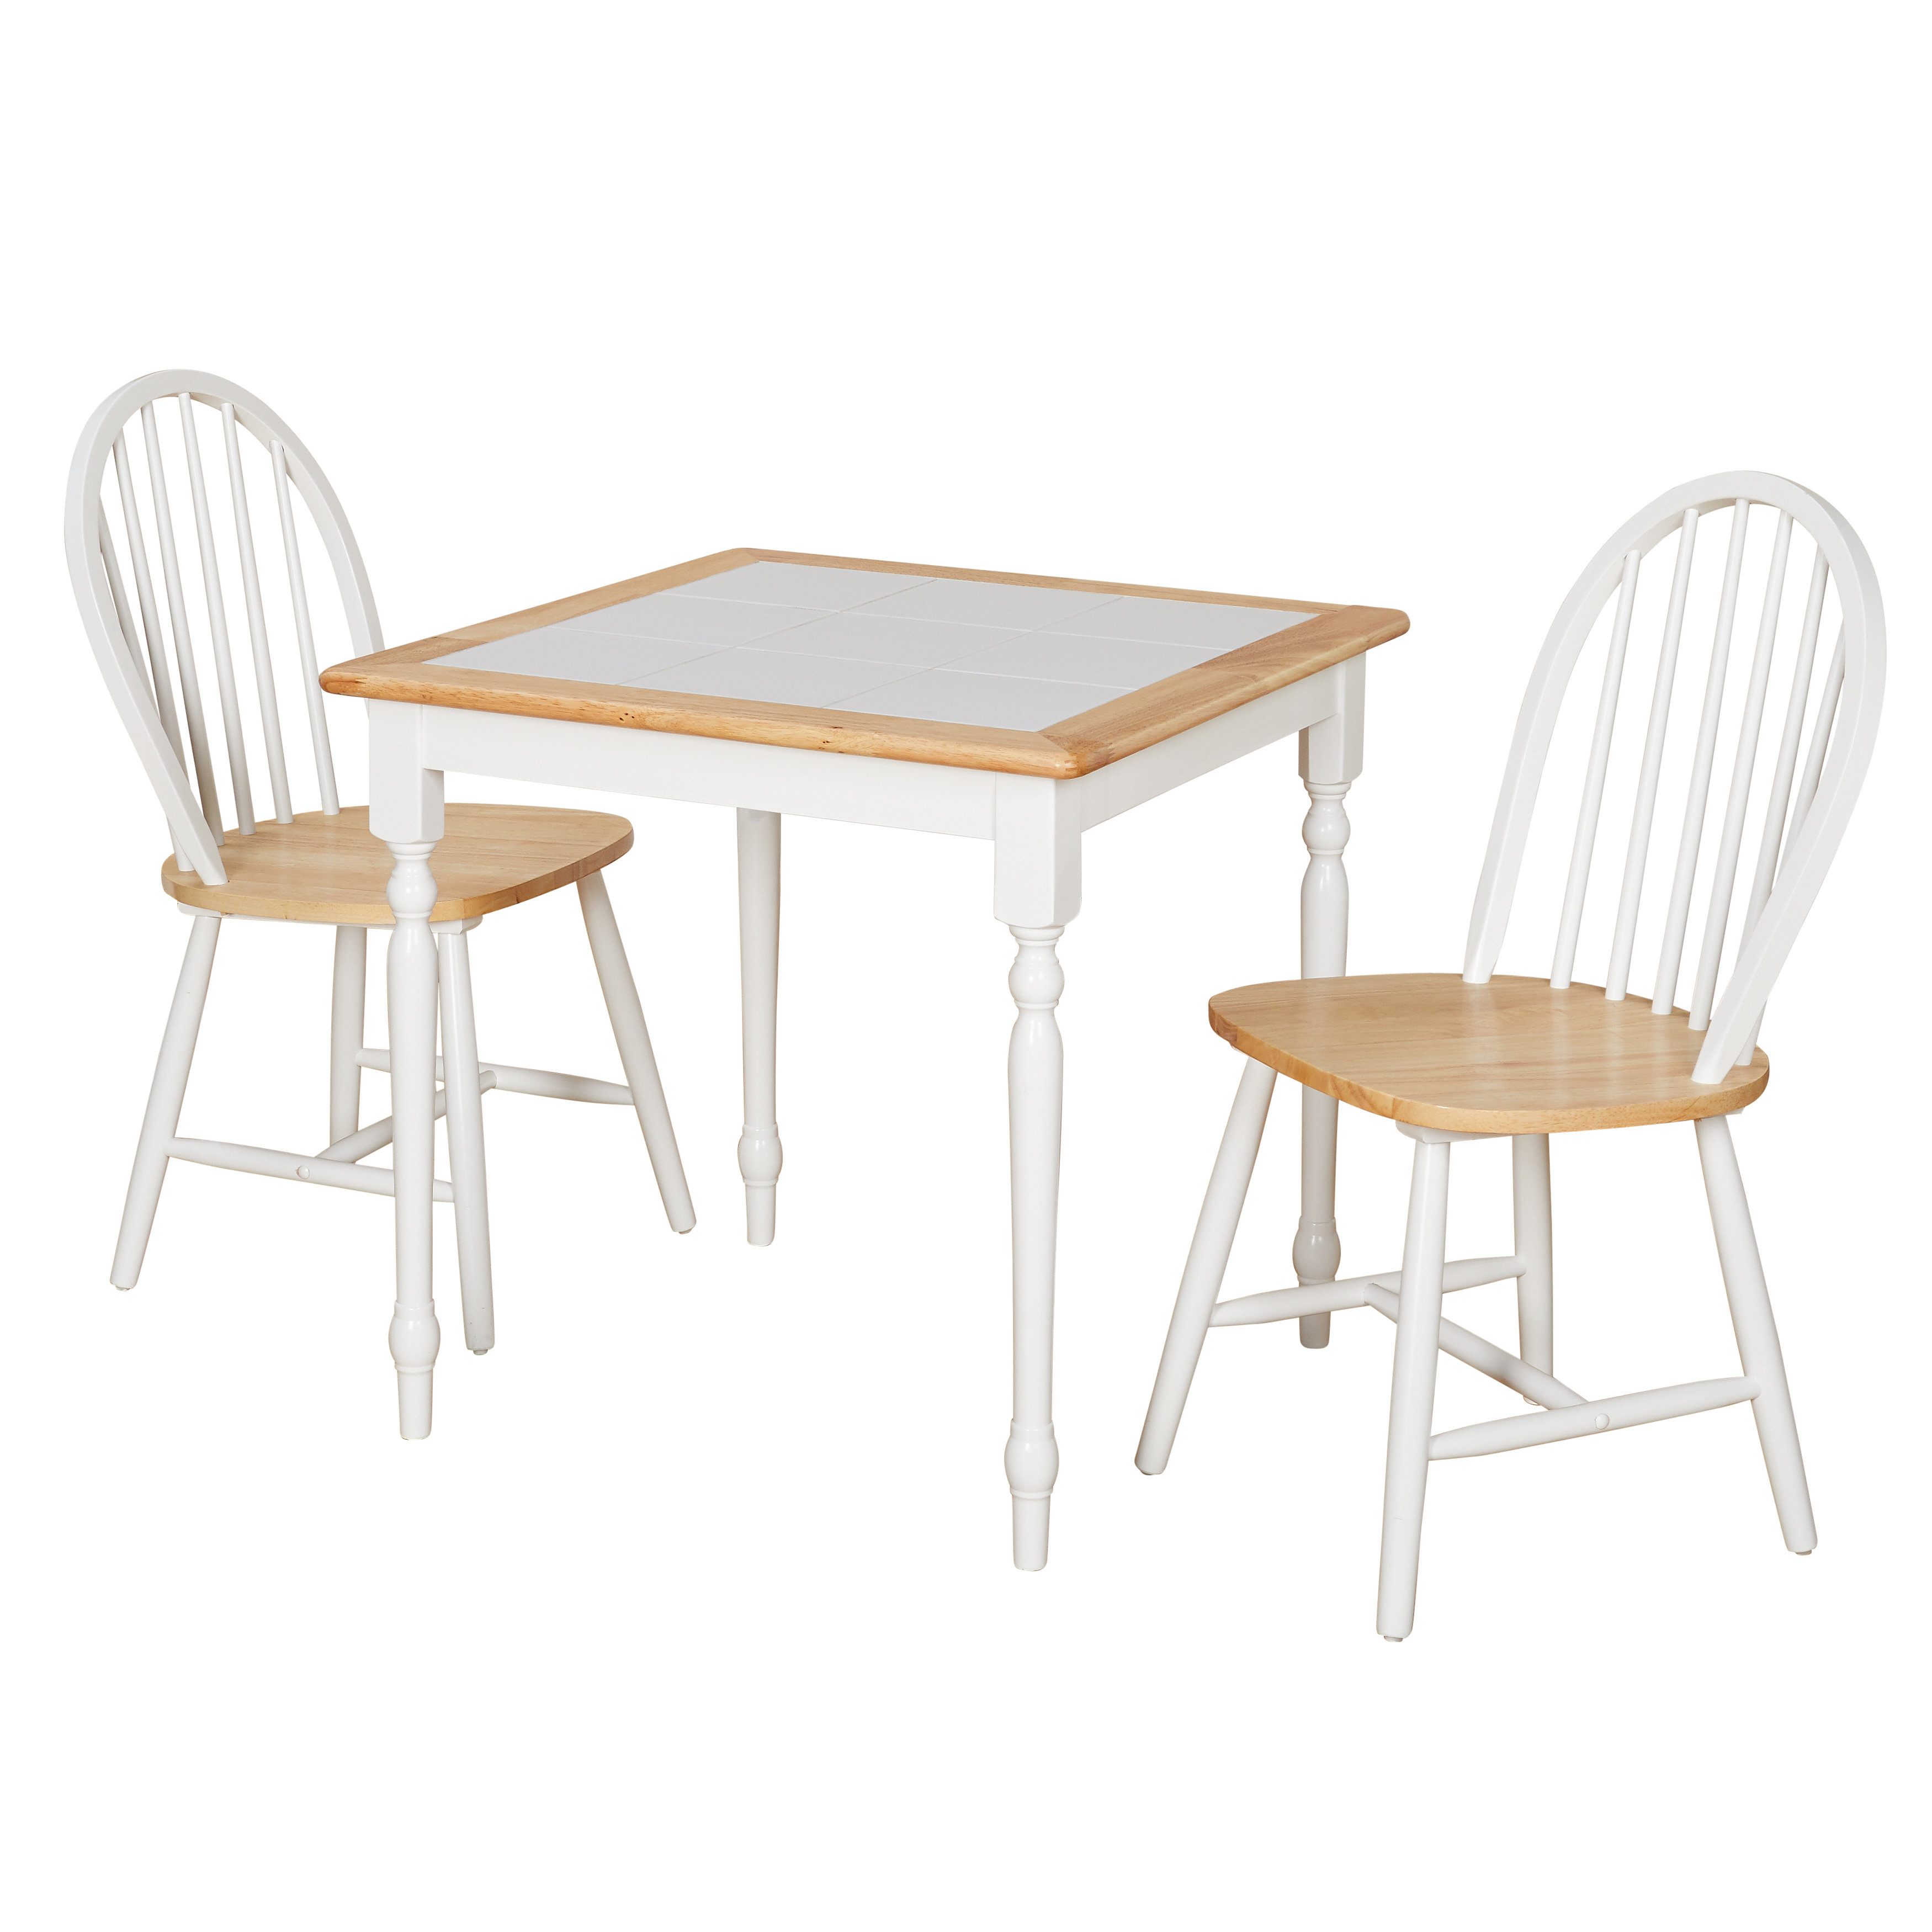 August Grove Llanas 3 Piece Dining Set Inside 2017 Nutter 3 Piece Dining Sets (Image 5 of 20)